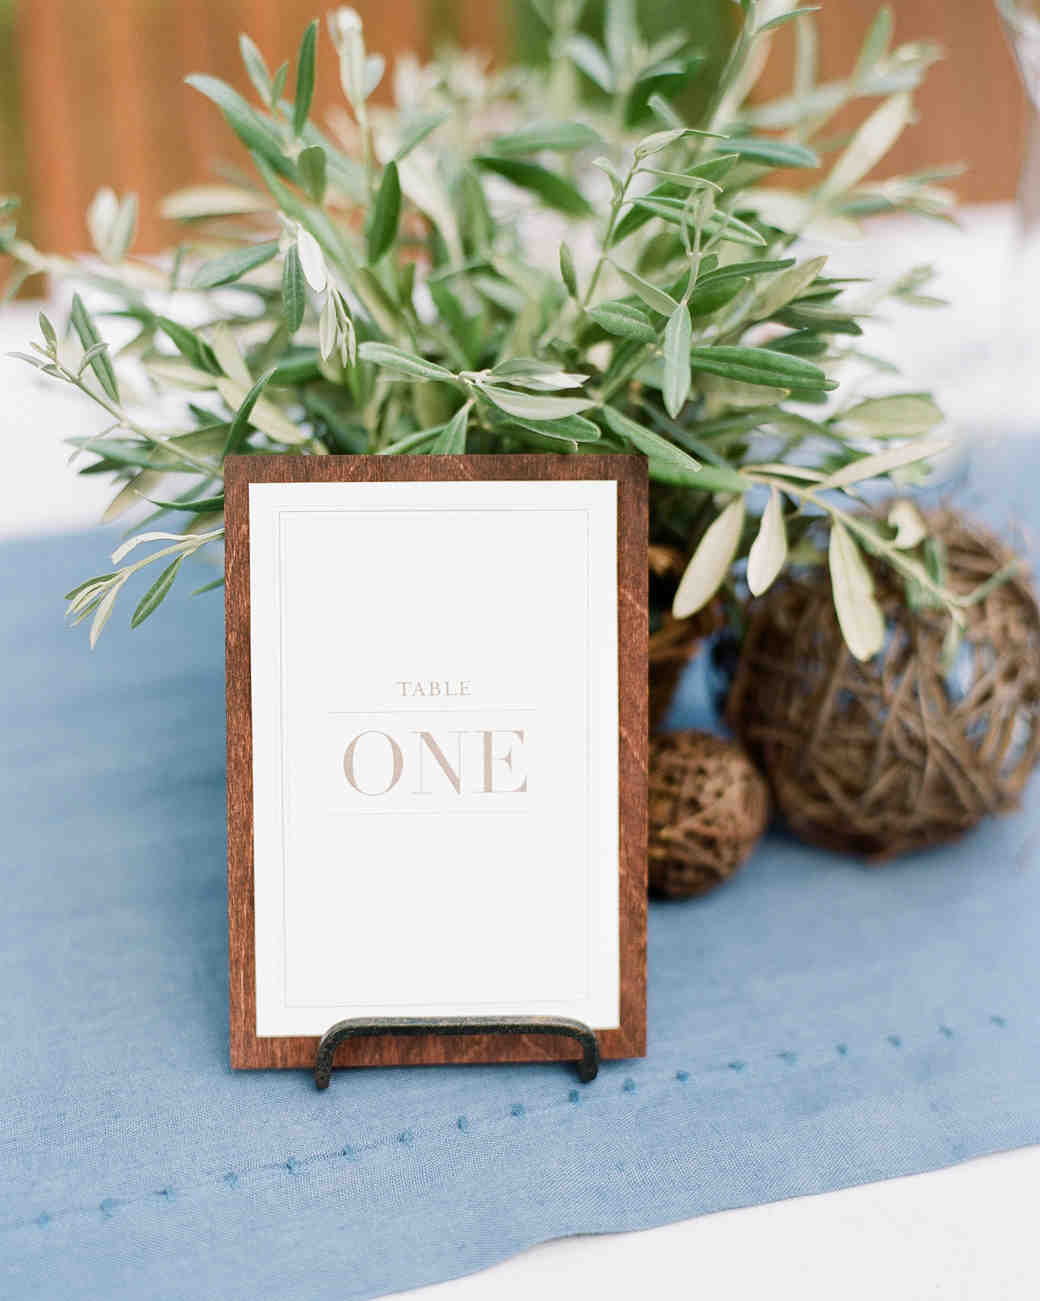 wedding table number ideas that scored at real martha stewart weddings